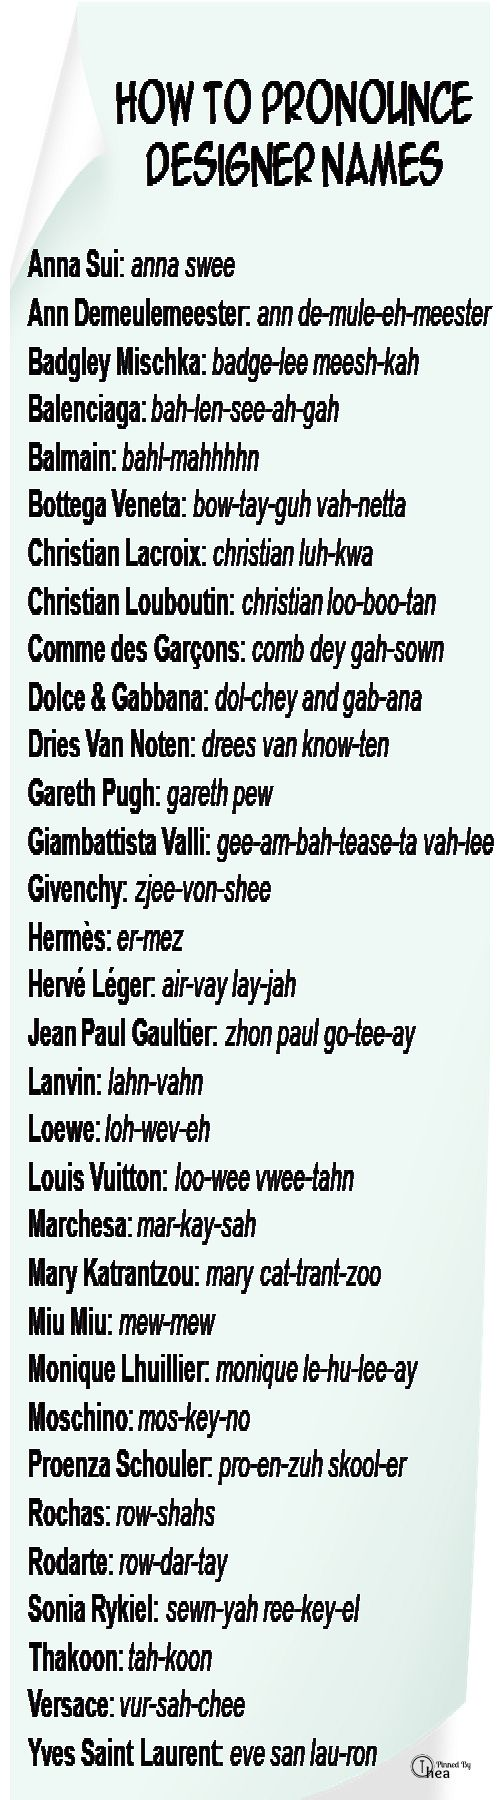 With more than names, this is the ultimate how-to guide on pronouncing tongue-twisting designer names such as Louboutin and Demeulemeester.